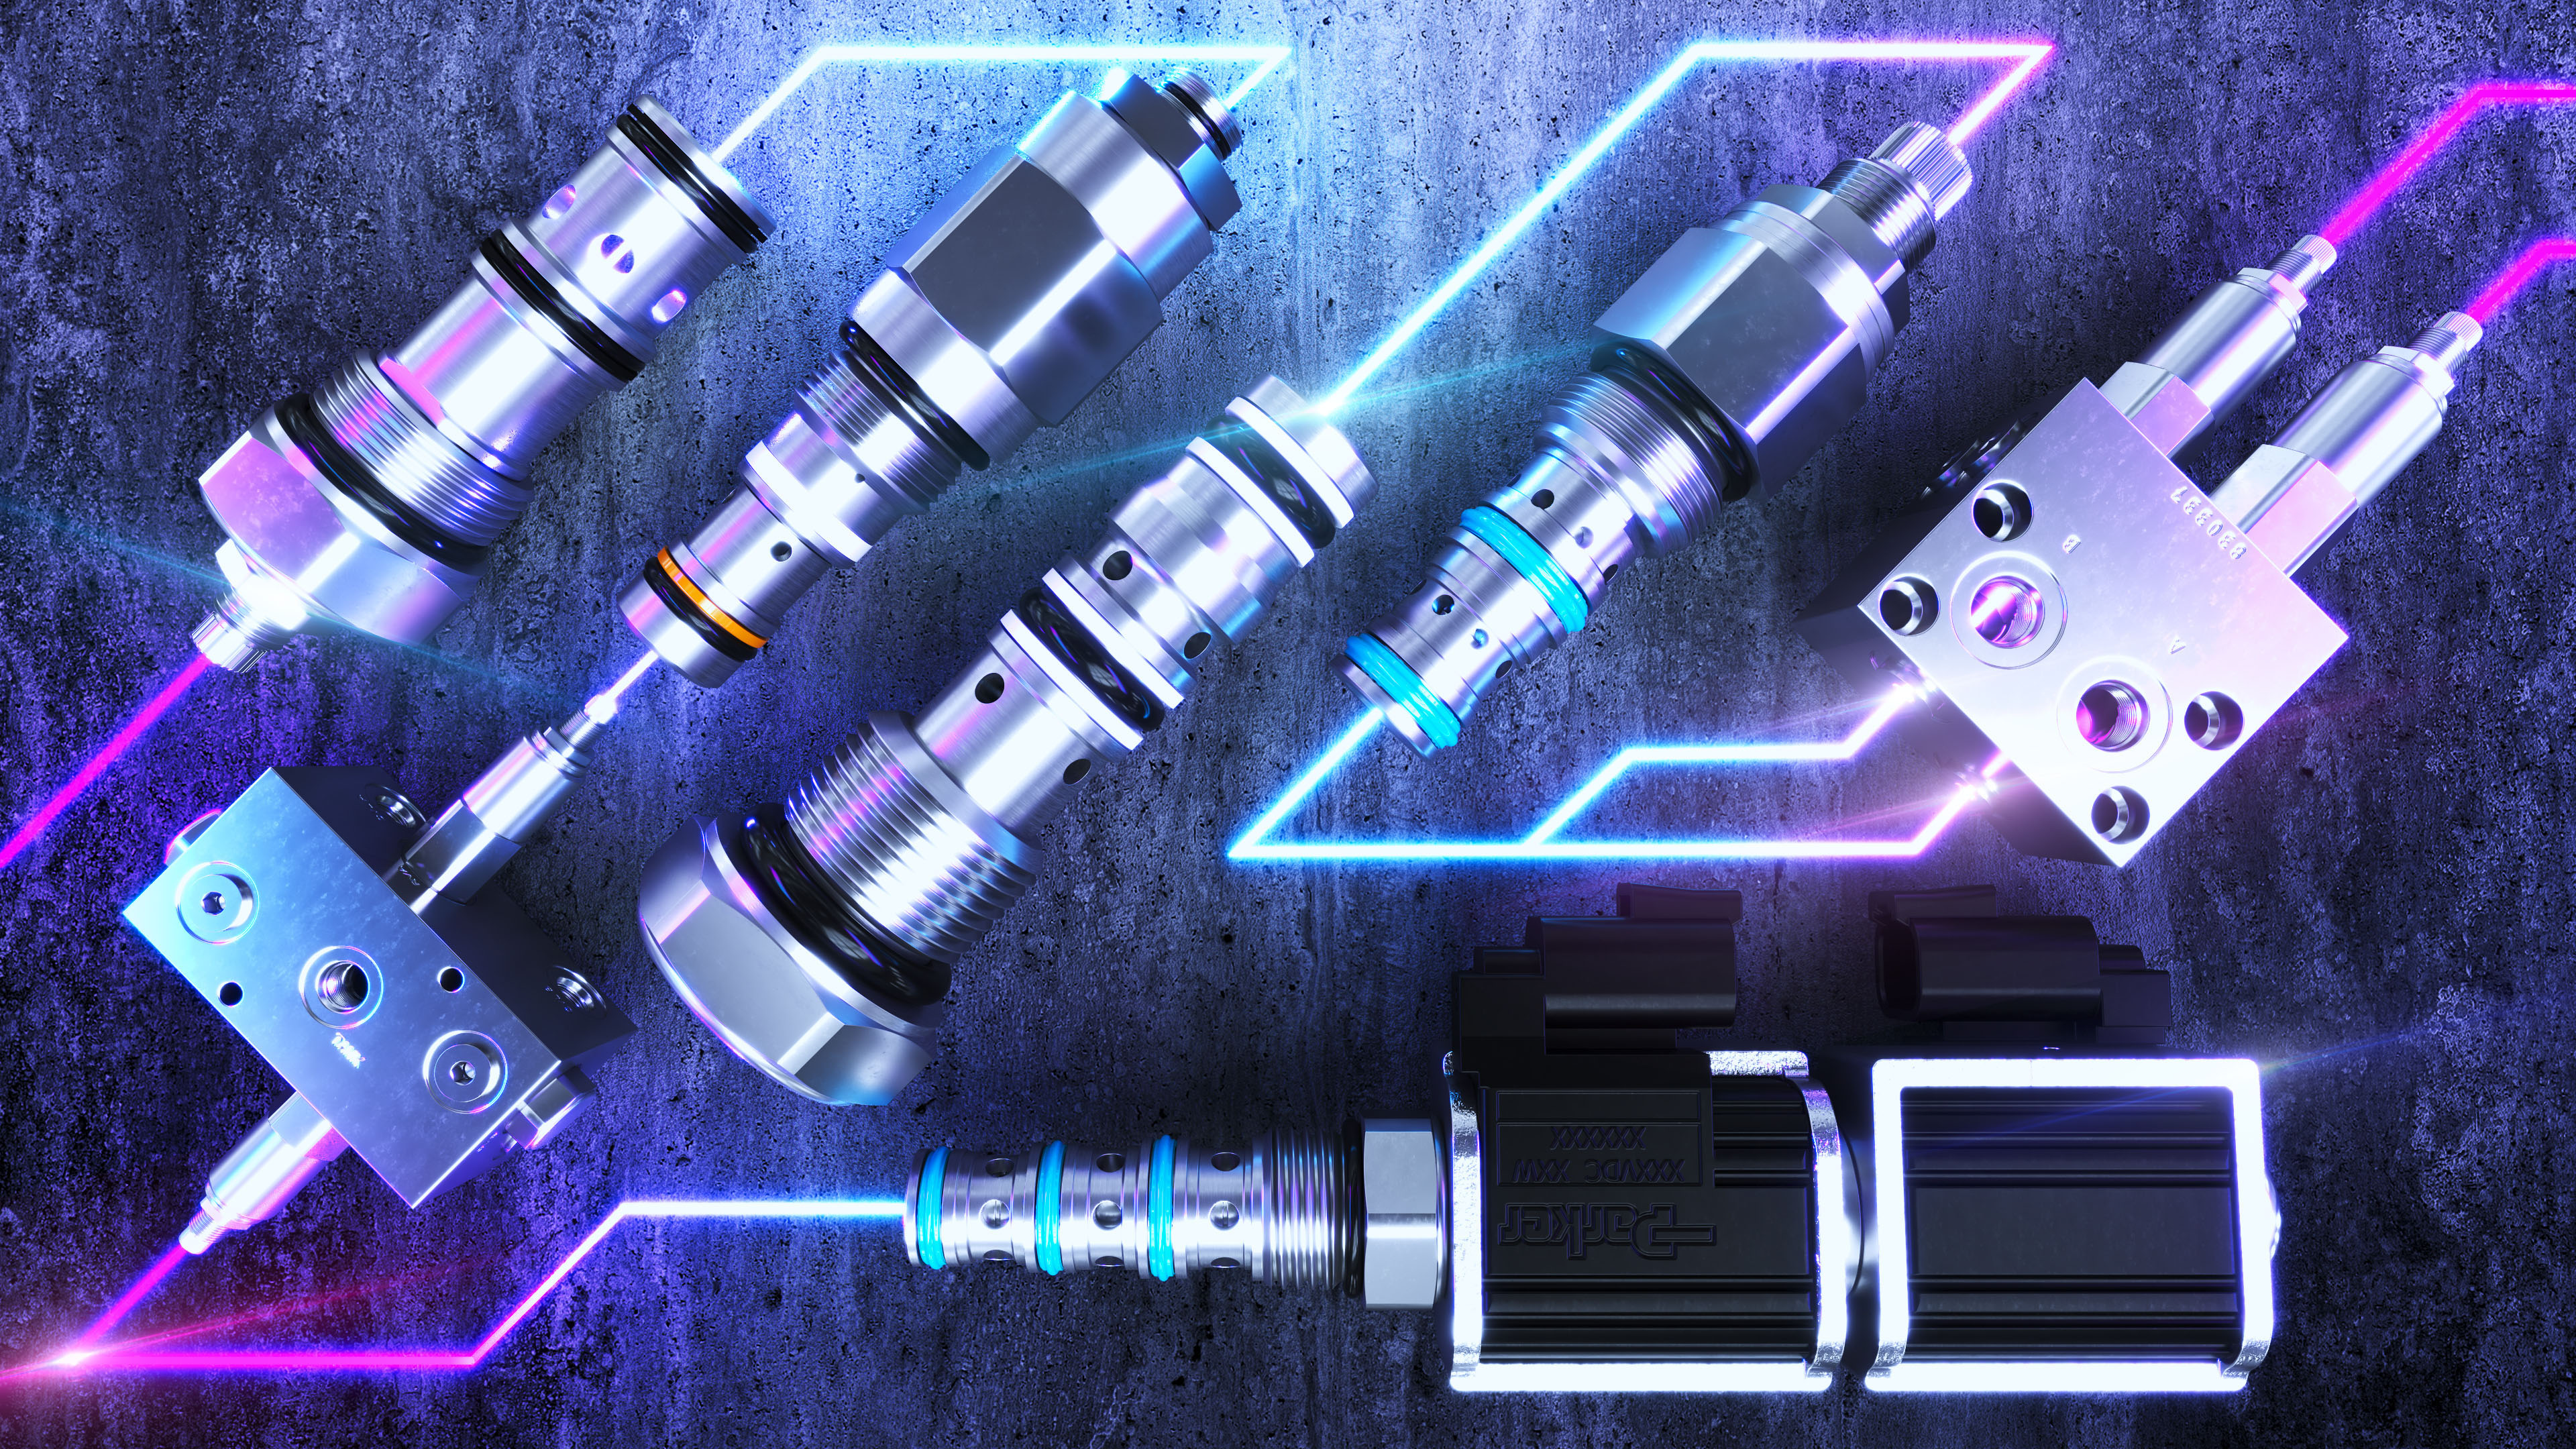 Industrial component hero style rendering with concrete background and light effects